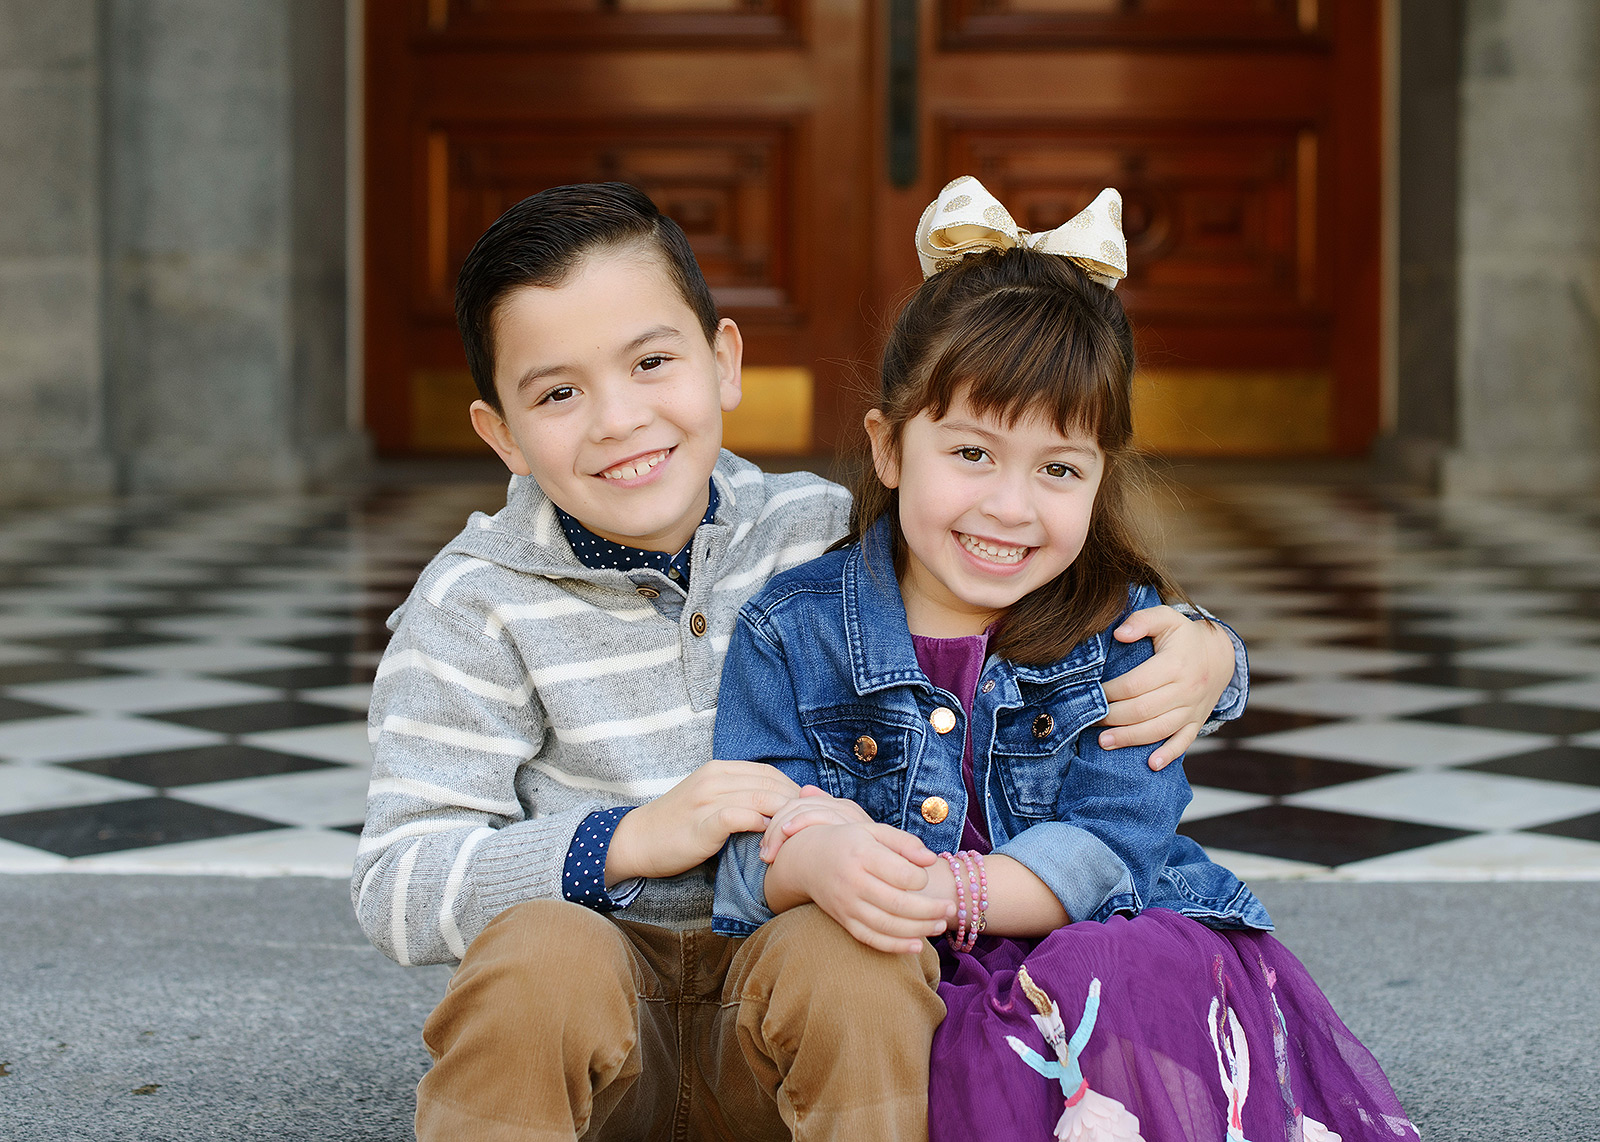 Brother and sister smiling and hugging on State Capitol steps